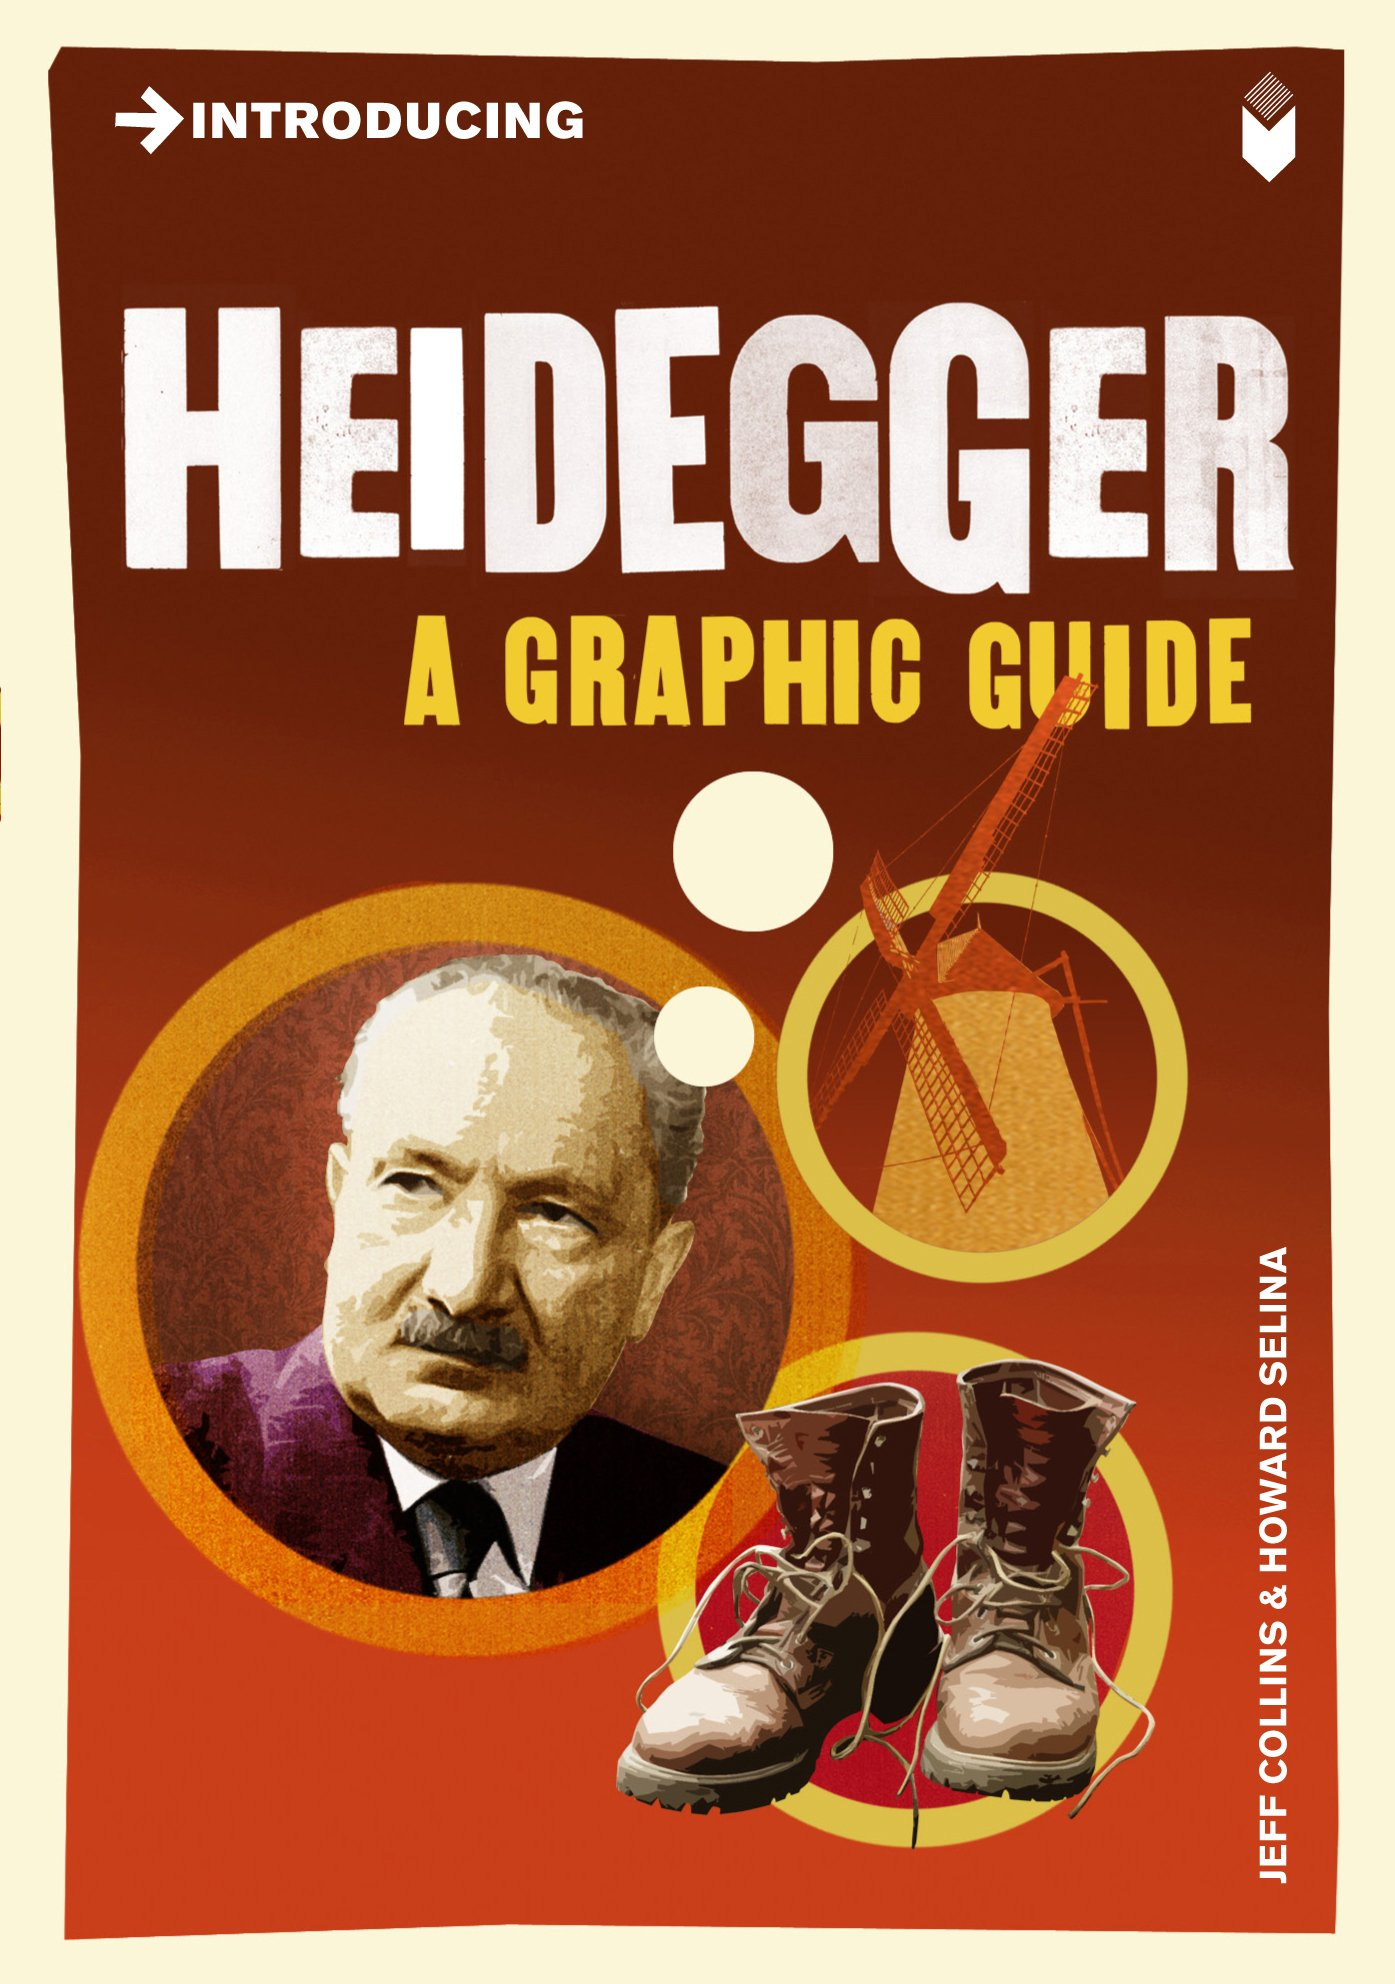 Introducing Heidegger: A Graphic Guide: Jeff Collins, Howard Selina ...